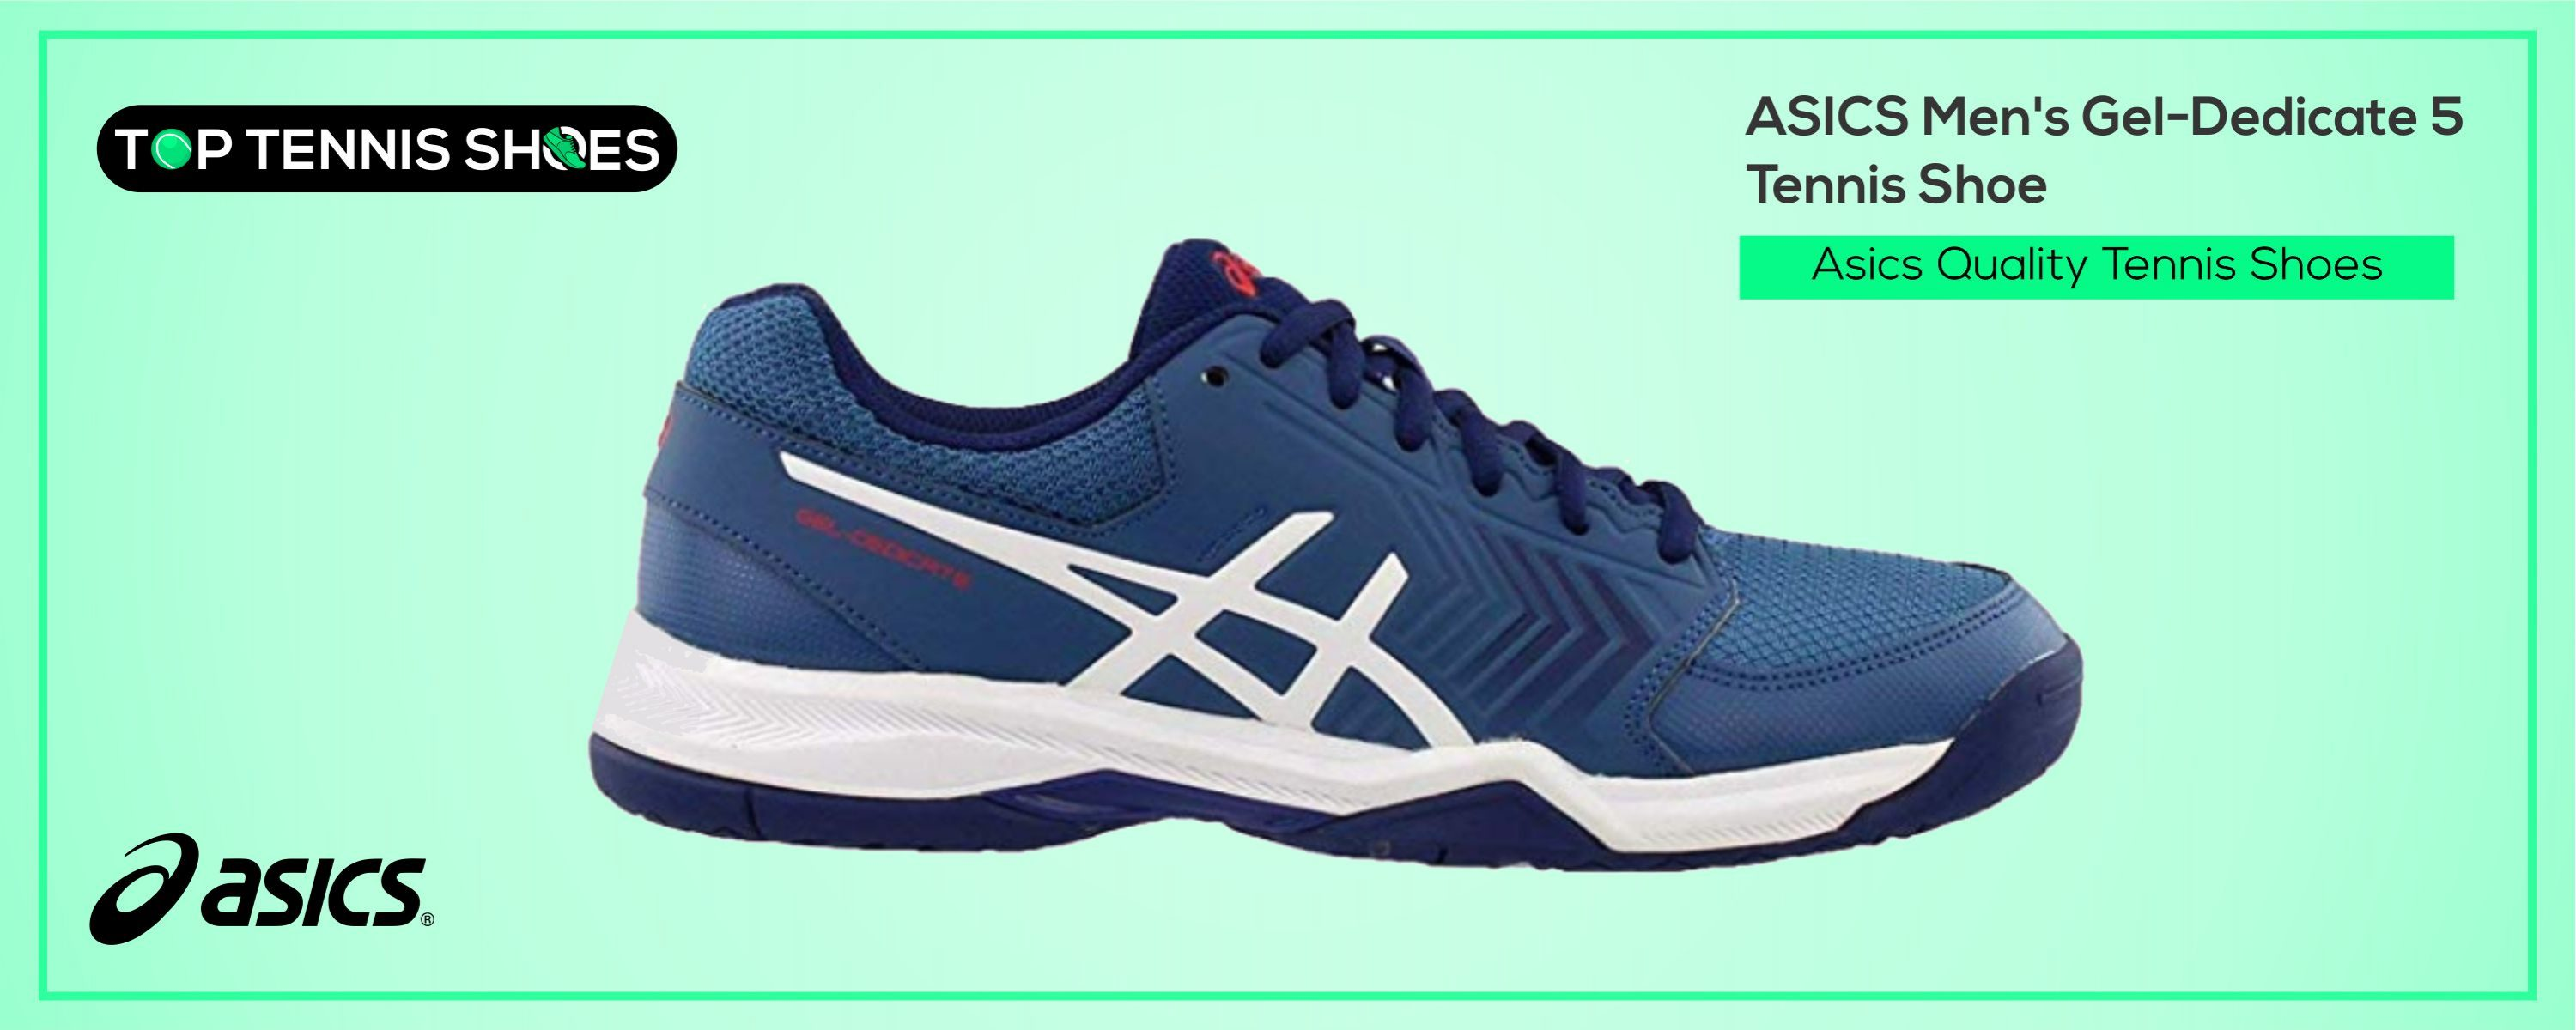 Asics Best Quality Tennis Shoes